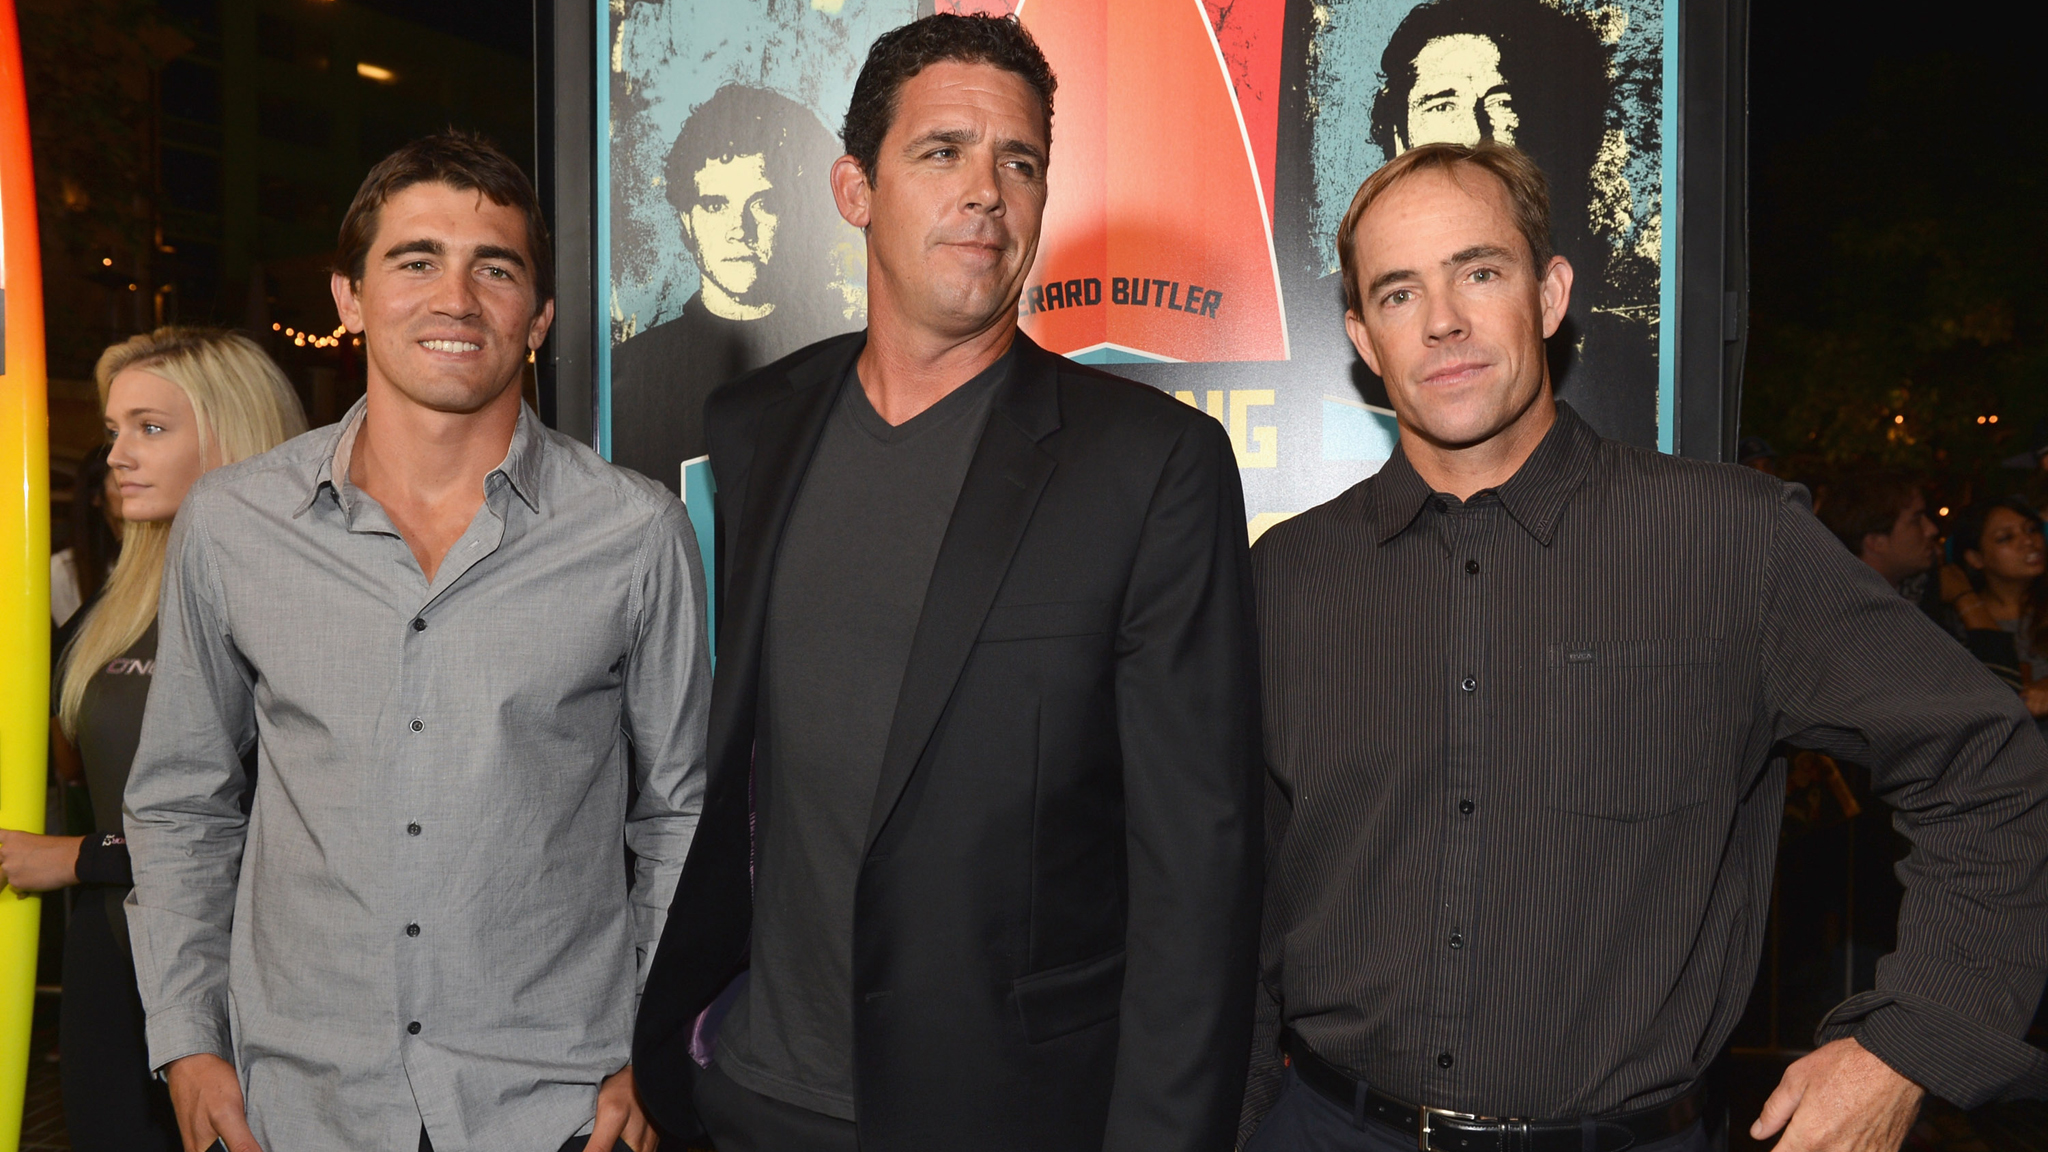 Professional surfers Greg Long, Peter Mel and Zac Wormhoudt at the premiere of 20th Century Fox's 'Chasing Mavericks' in October.